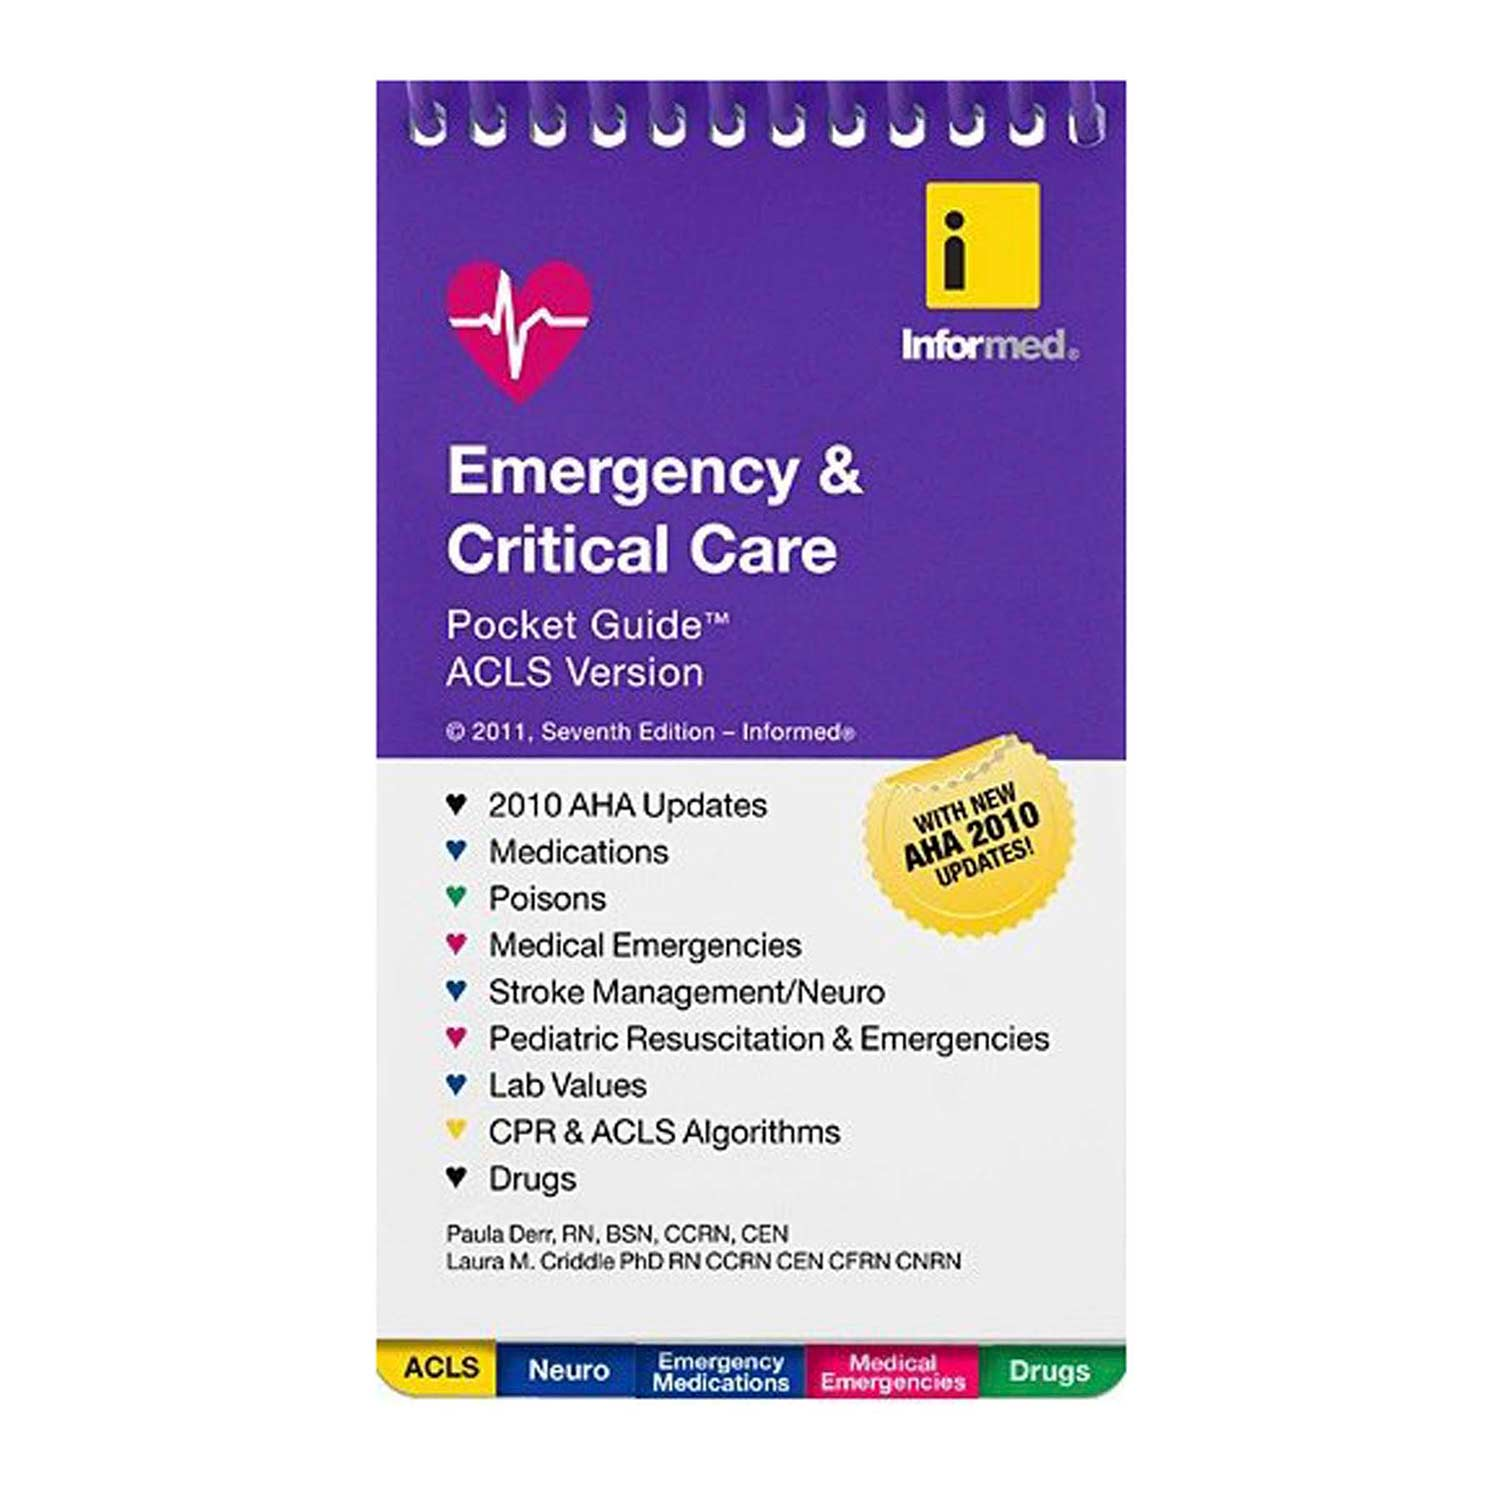 Emergency and Critical Care: Pocket Guide